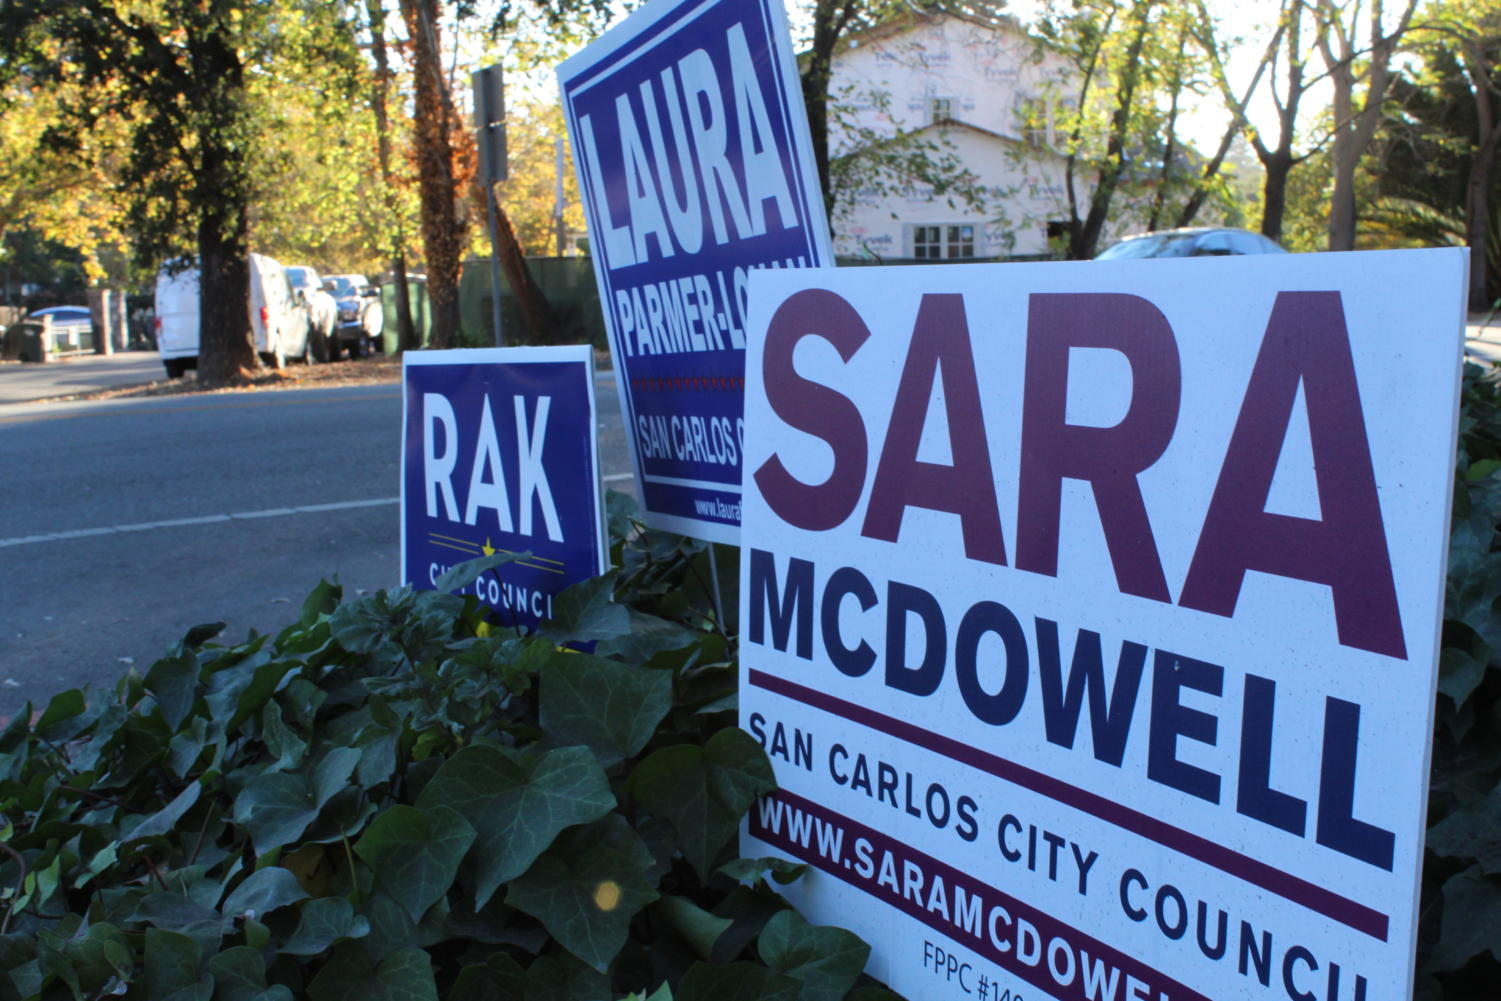 Election signs pop up across San Carlos as race heats up.